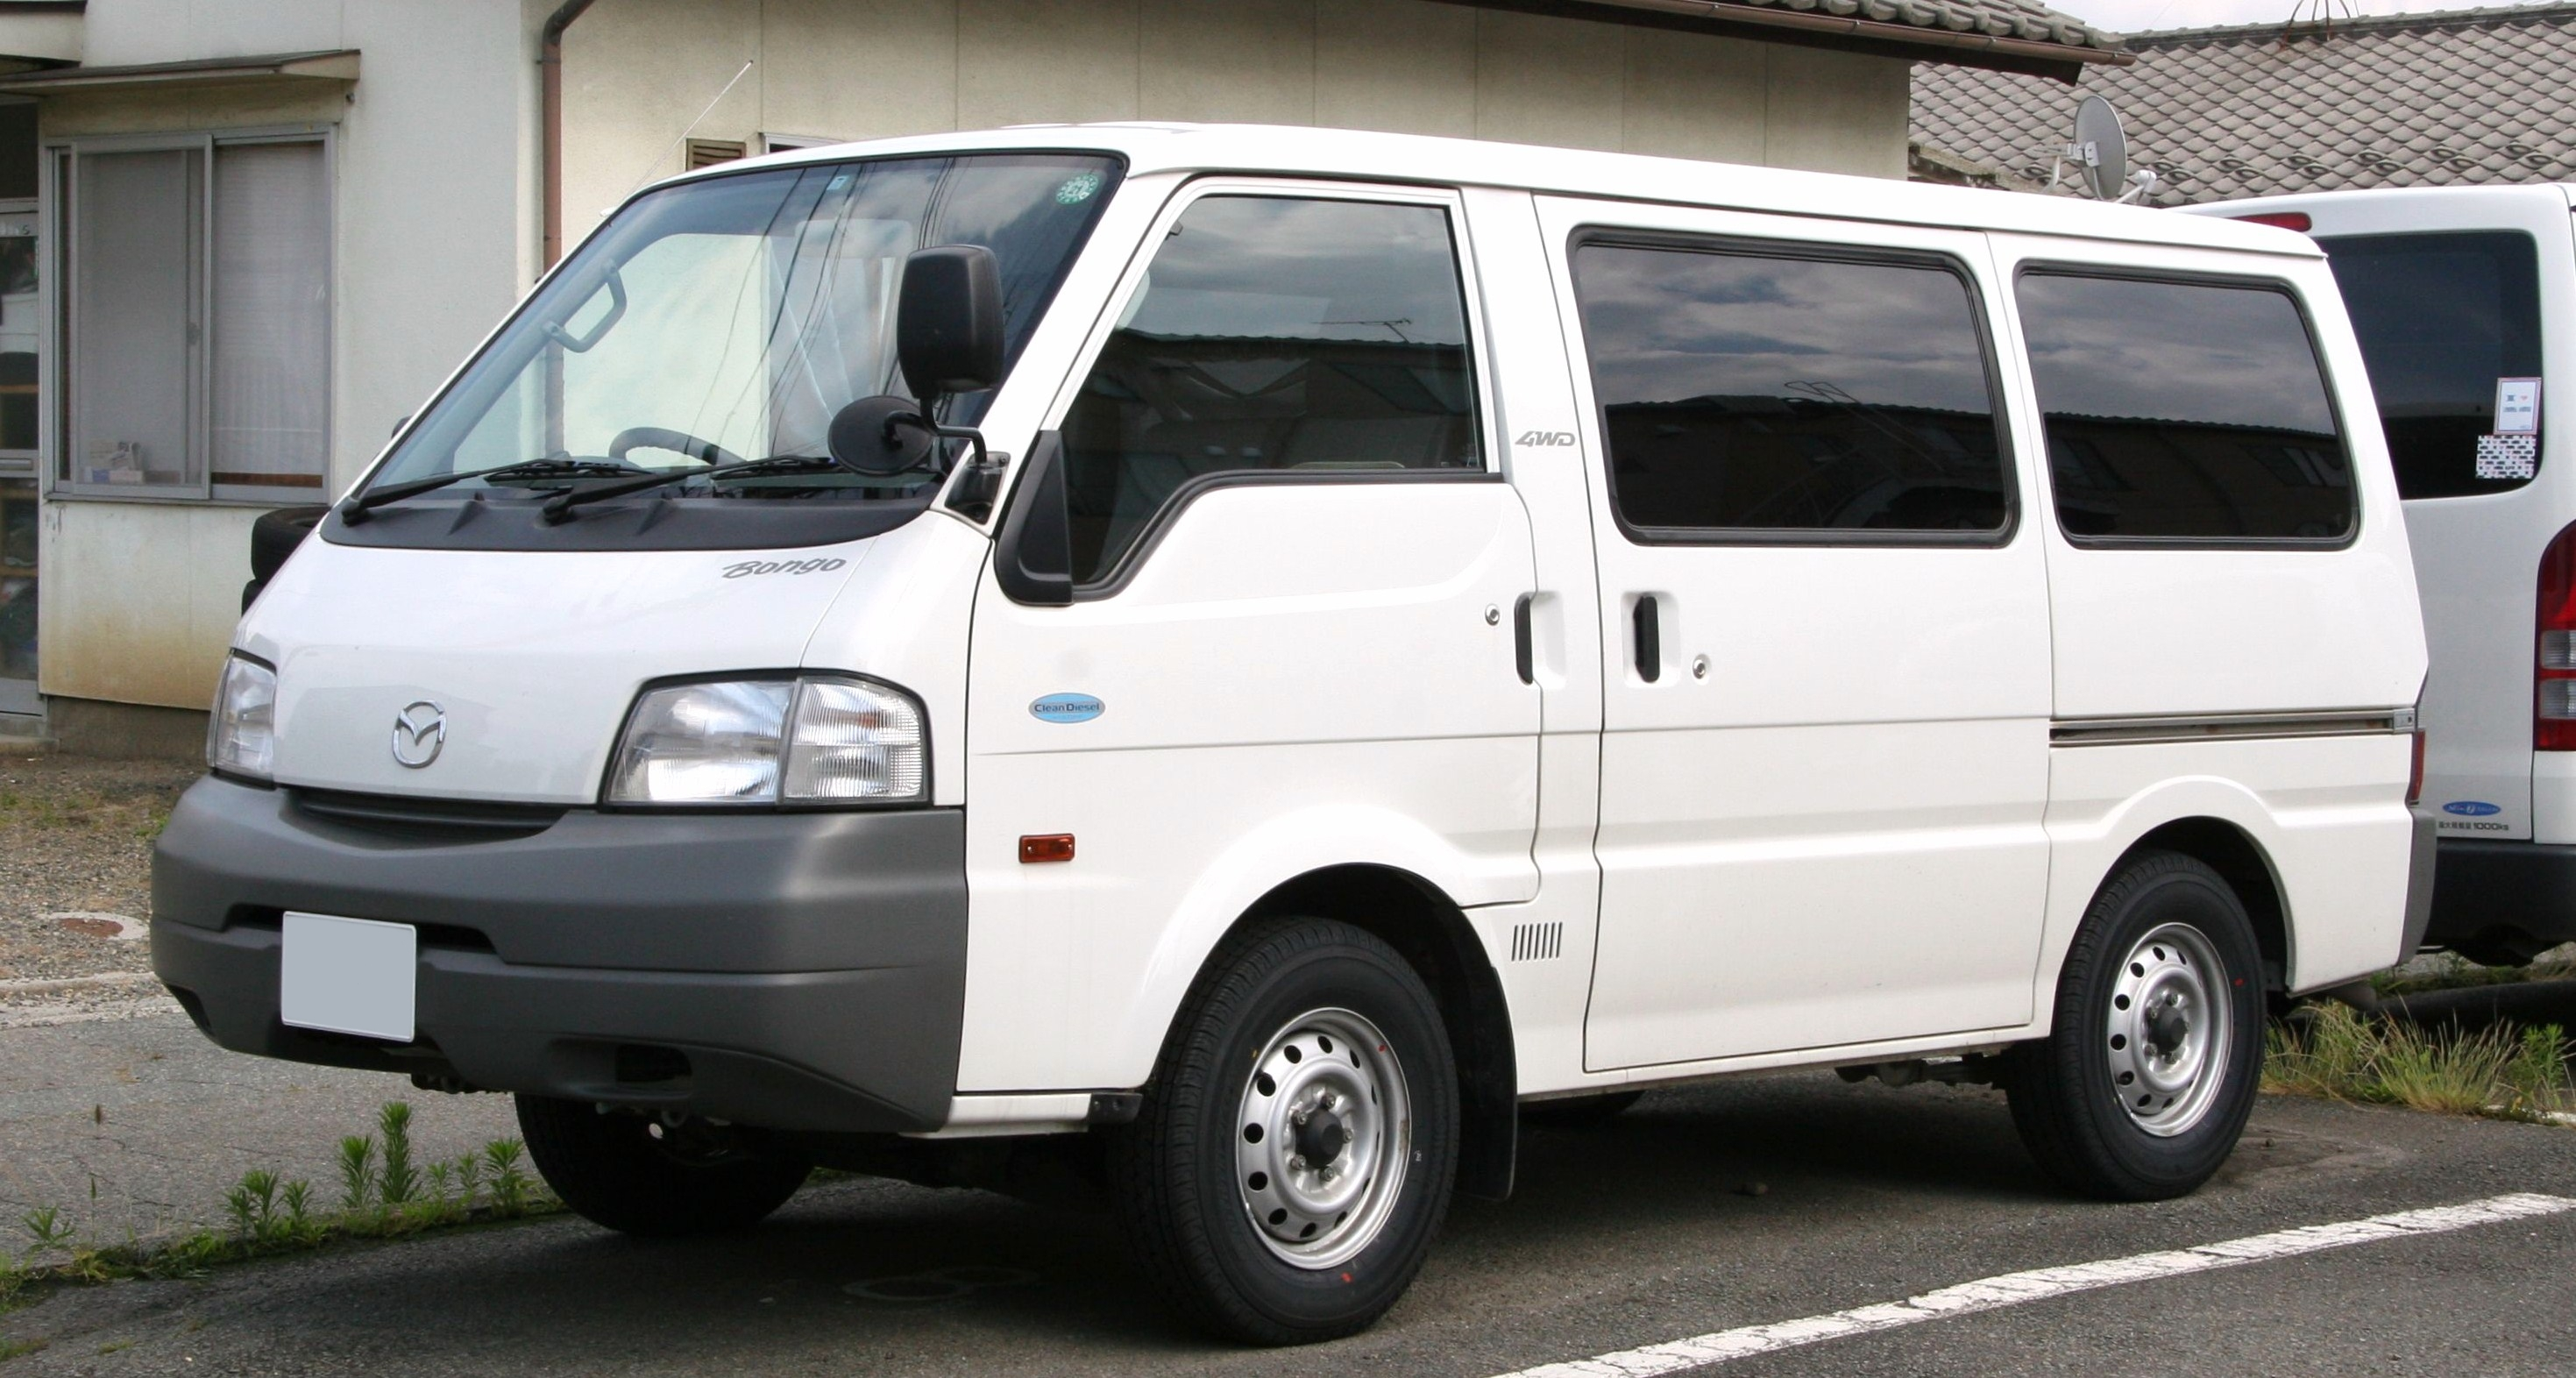 [SCHEMATICS_4JK]  Mazda Bongo - Wikipedia | Mazda Bongo Electrical Wiring Diagram |  | Wikipedia, the free encyclopedia